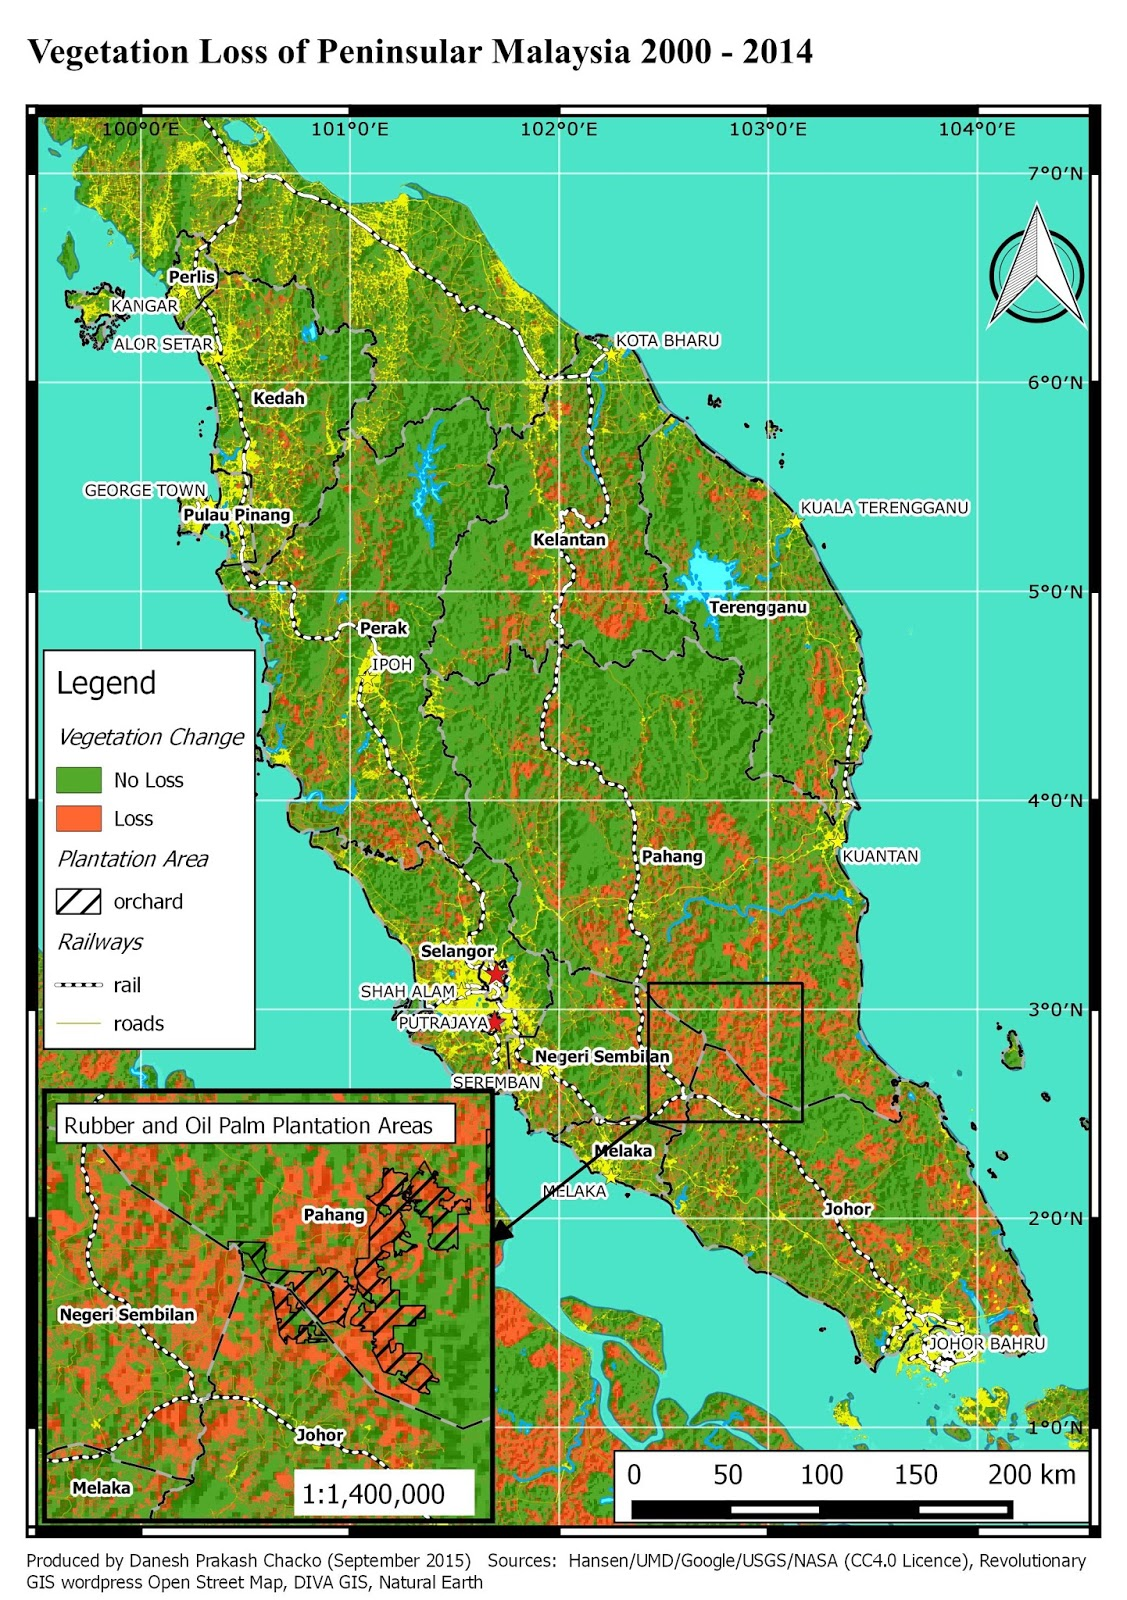 Welcome to daneshs atlas blog vegetation maps and stimulated minds recently i have been inspired by the human footprint maps of national geographic maps human footprint map of africa was built on four layers gumiabroncs Image collections